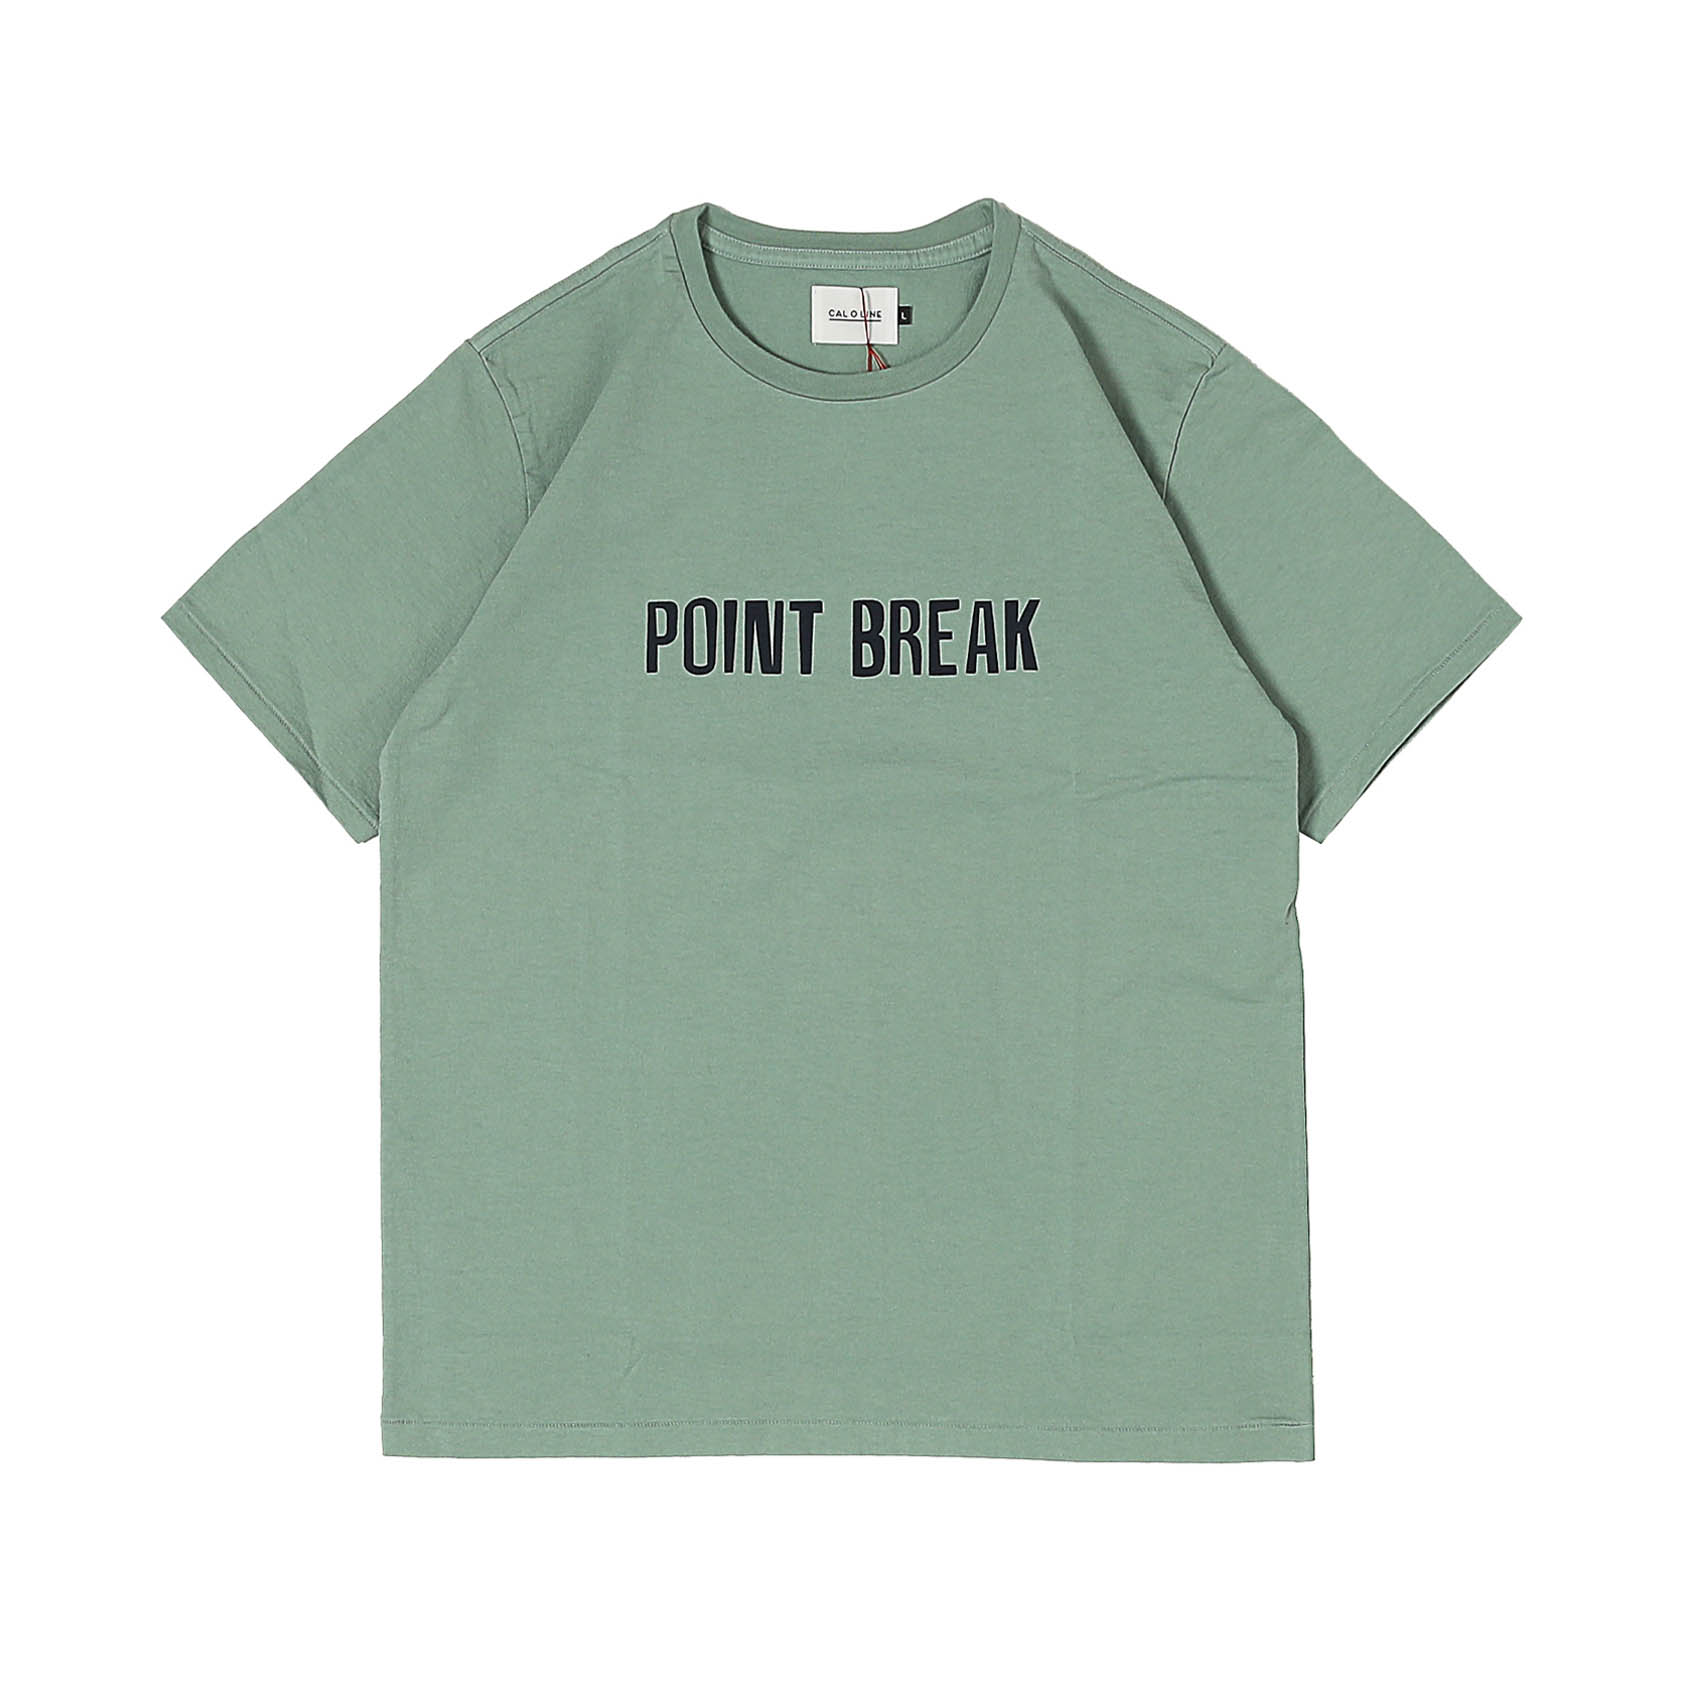 POINT BREAK T-SHIRT - MINT